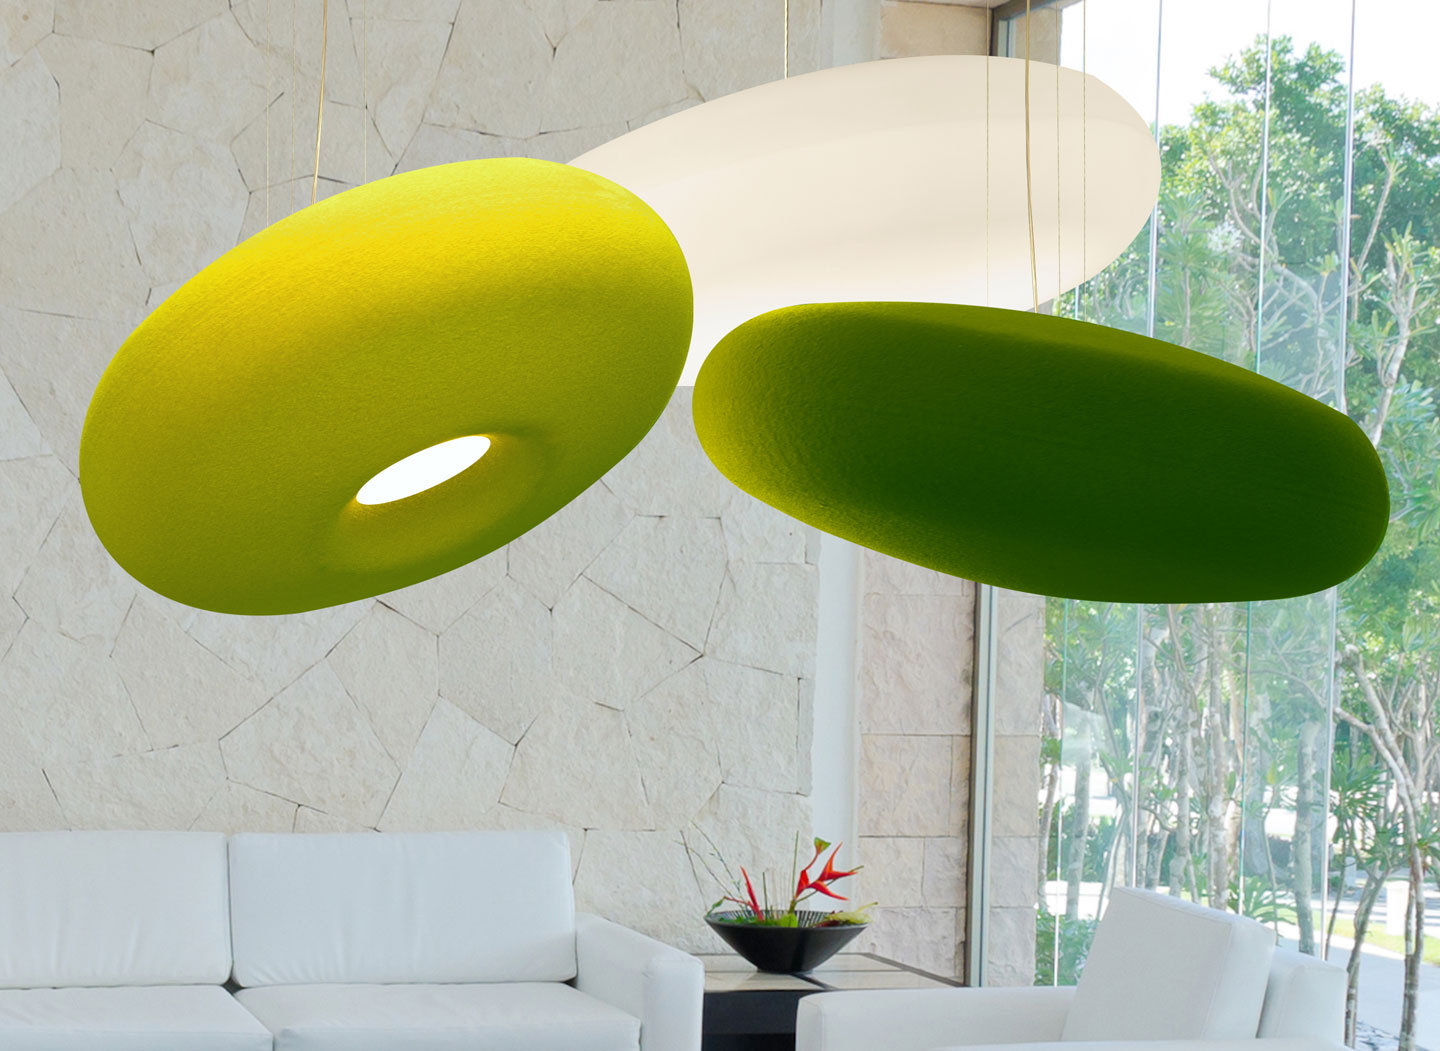 Donut Acoustic Luminaire in a Residential Home